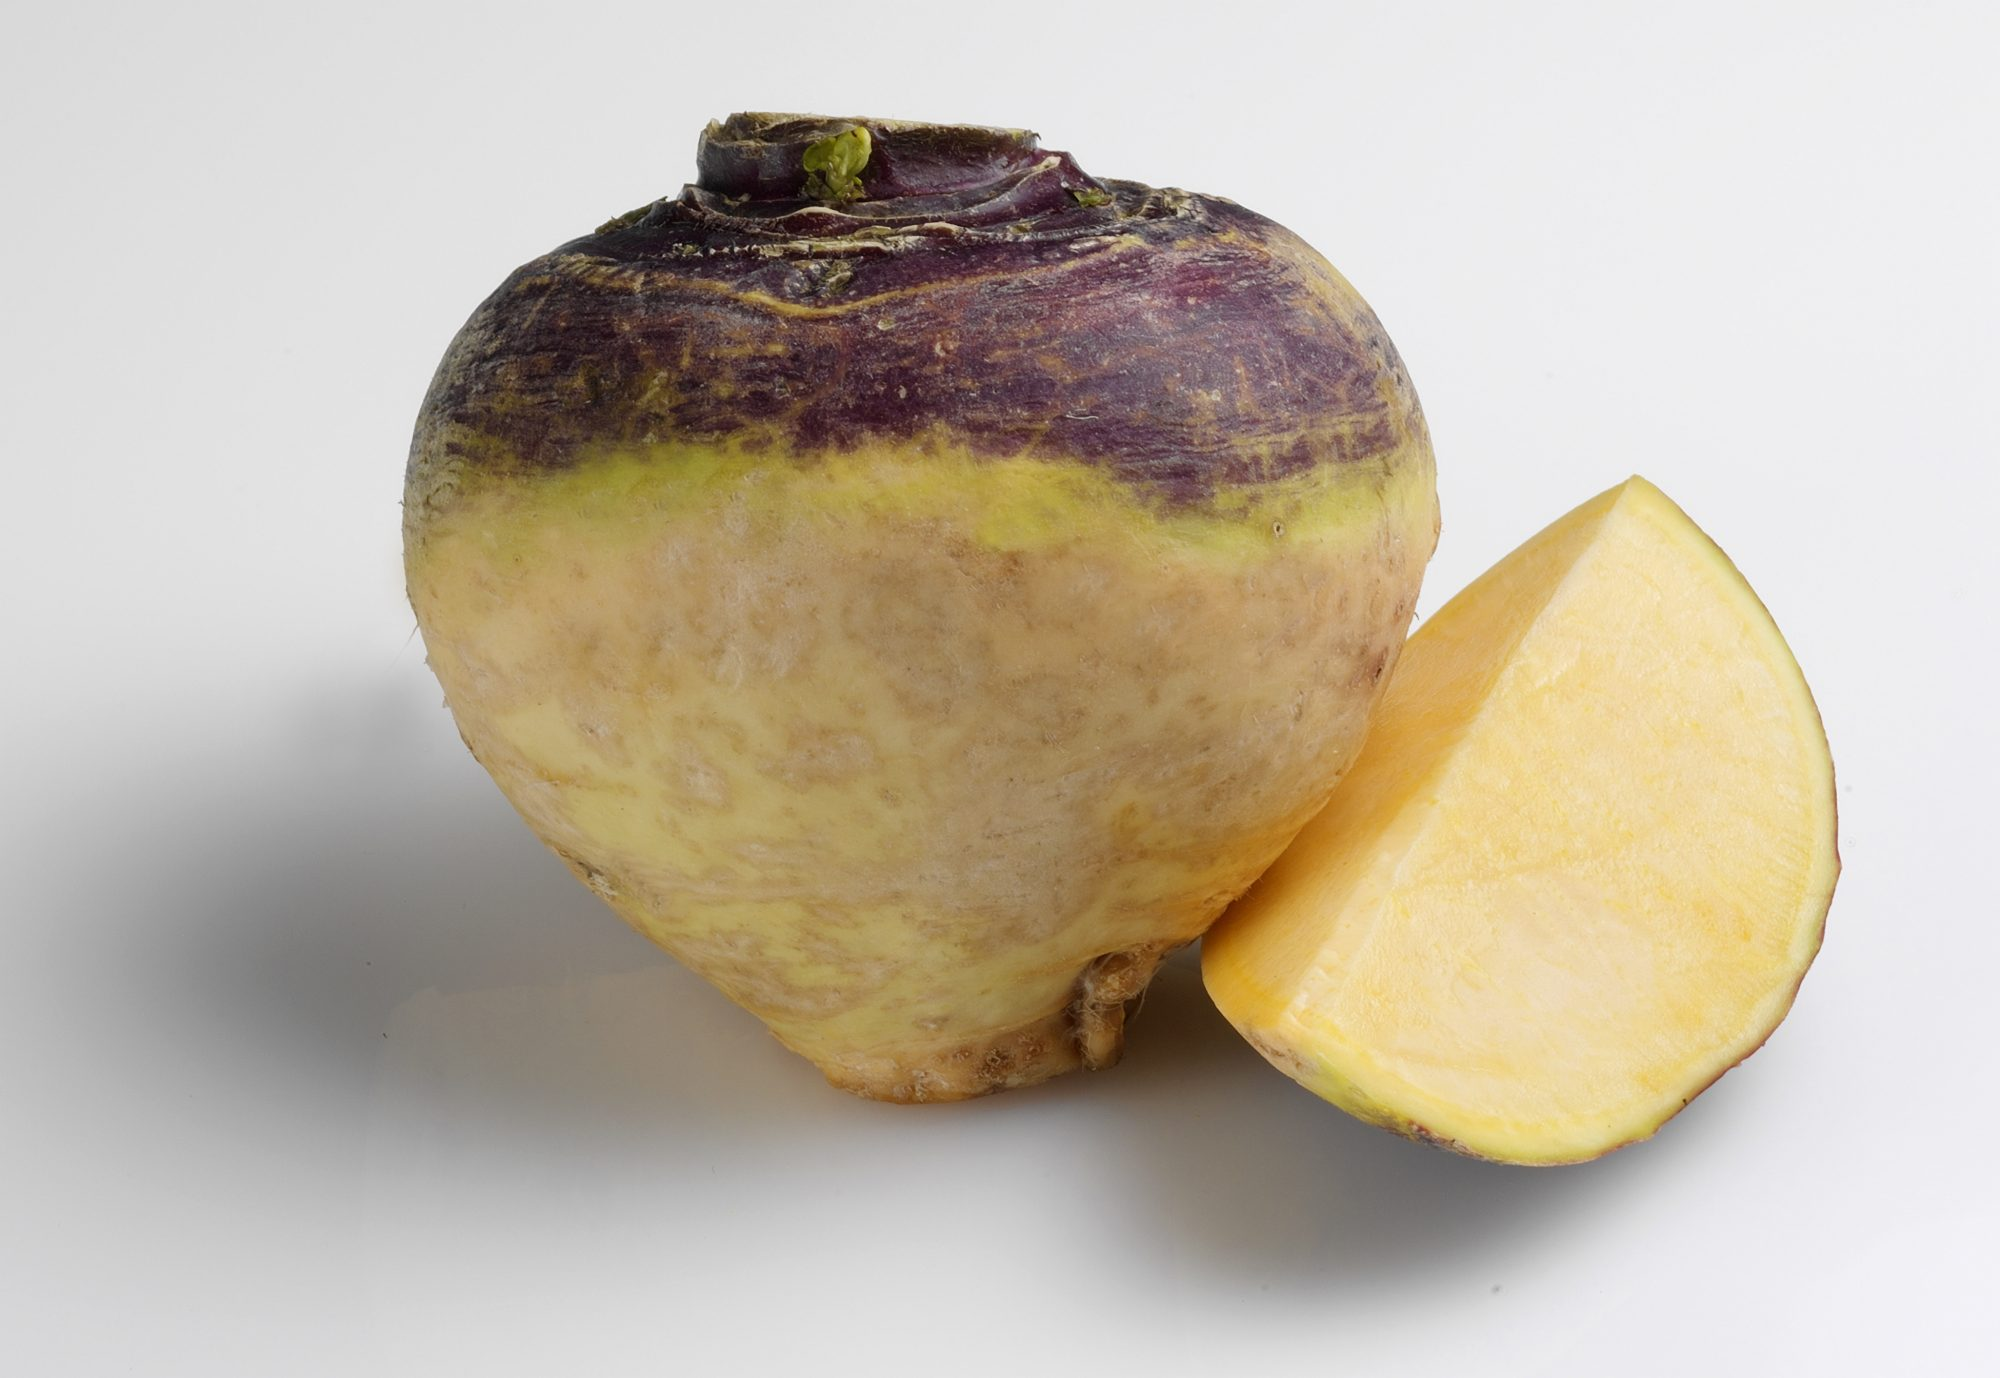 What Is a Rutabaga—and What Should You Do With It?